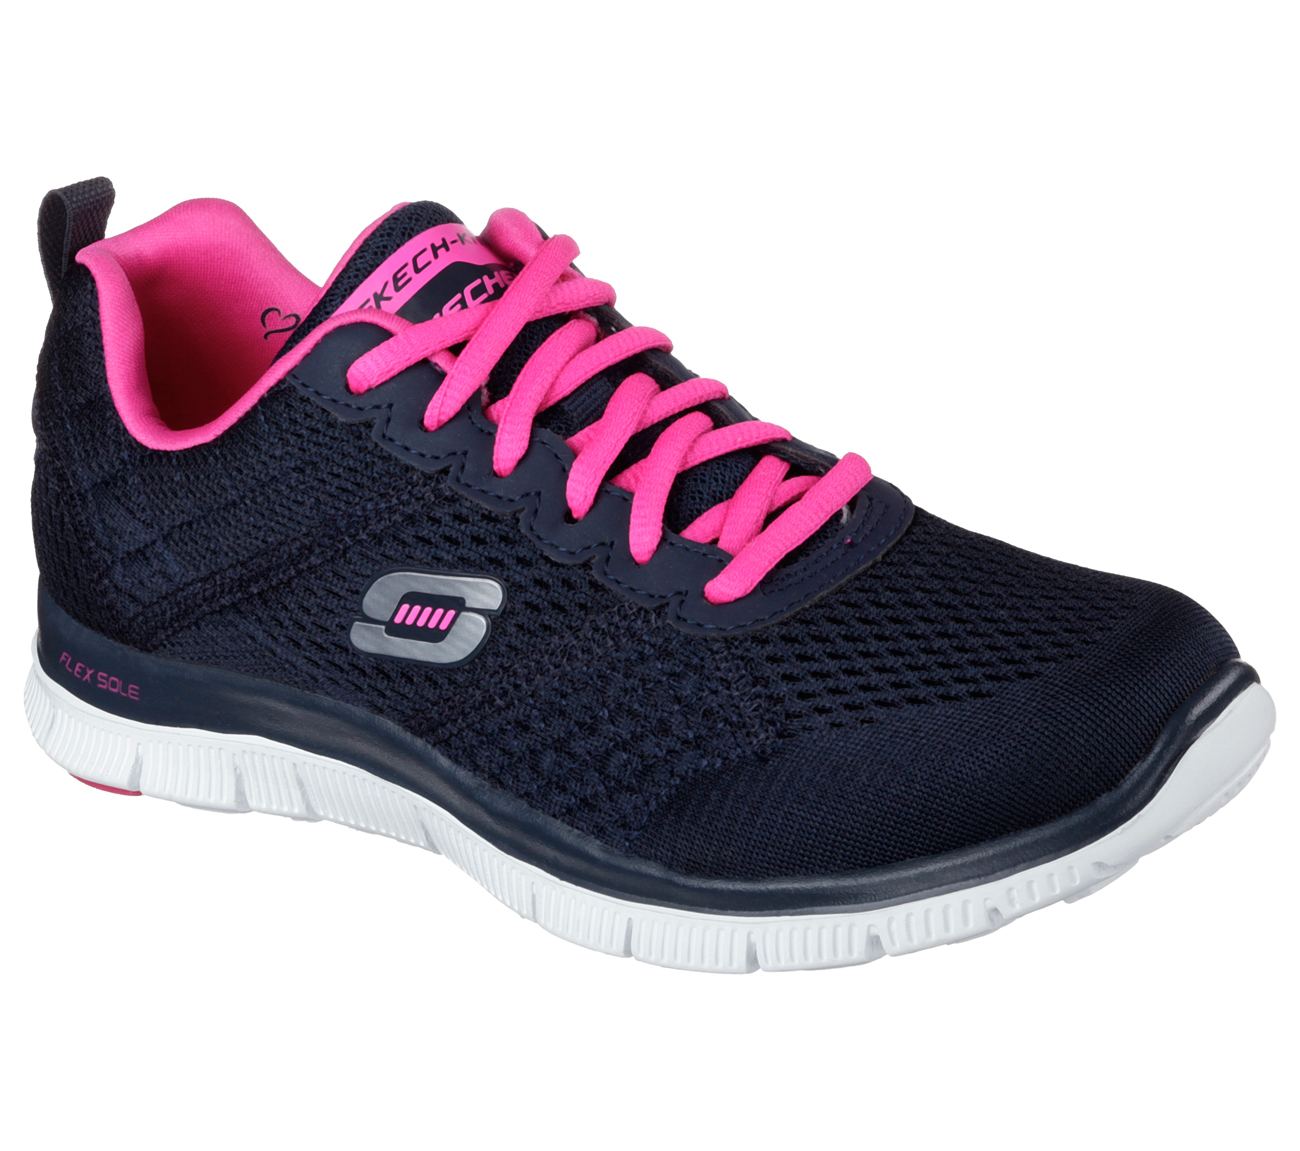 Skechers Air Amazing Shoes